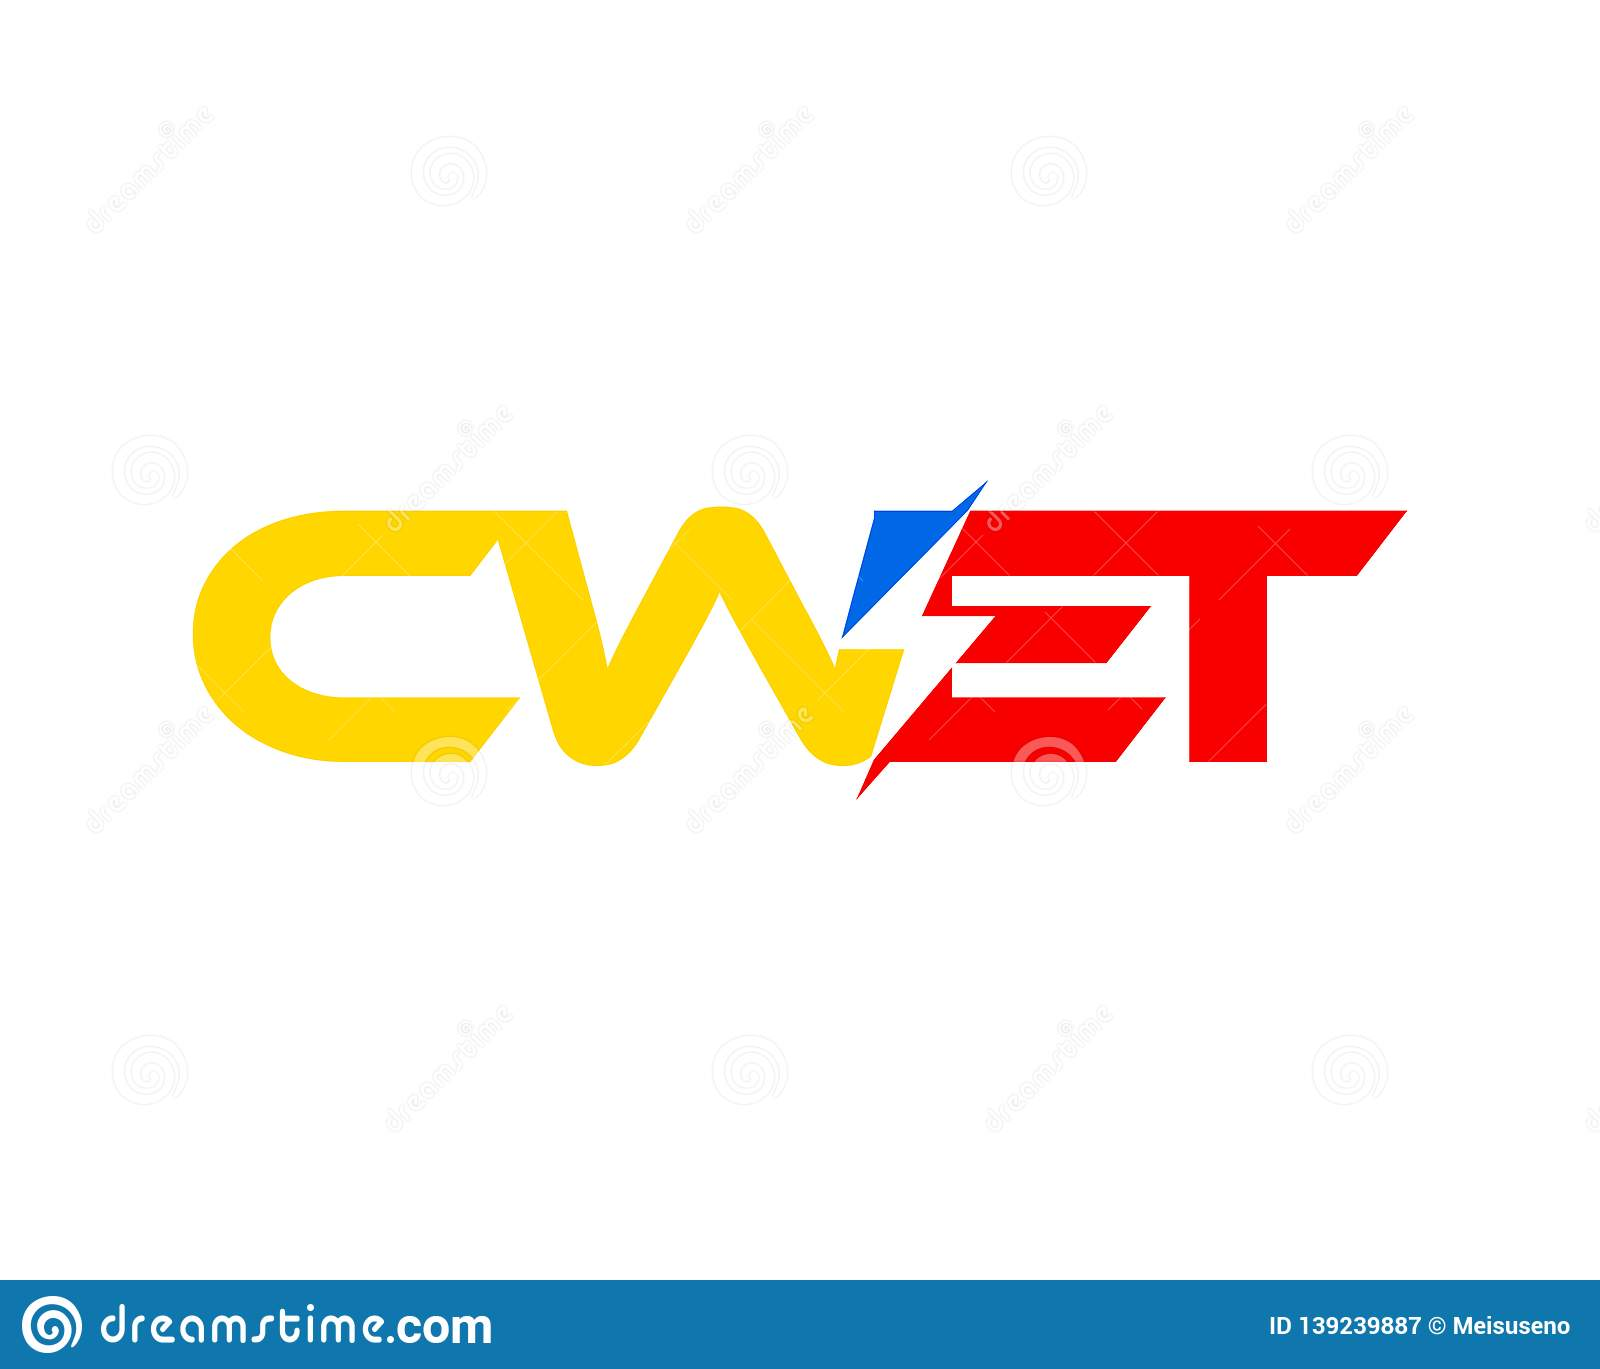 letter cwet logo with lightning icon letter combination power energy logo design for creative power ideas stock illustration illustration of battle history 139239887 https www dreamstime com letter cwet logo lightning icon letter combination power energy logo design creative power ideas initial letter cwet image139239887